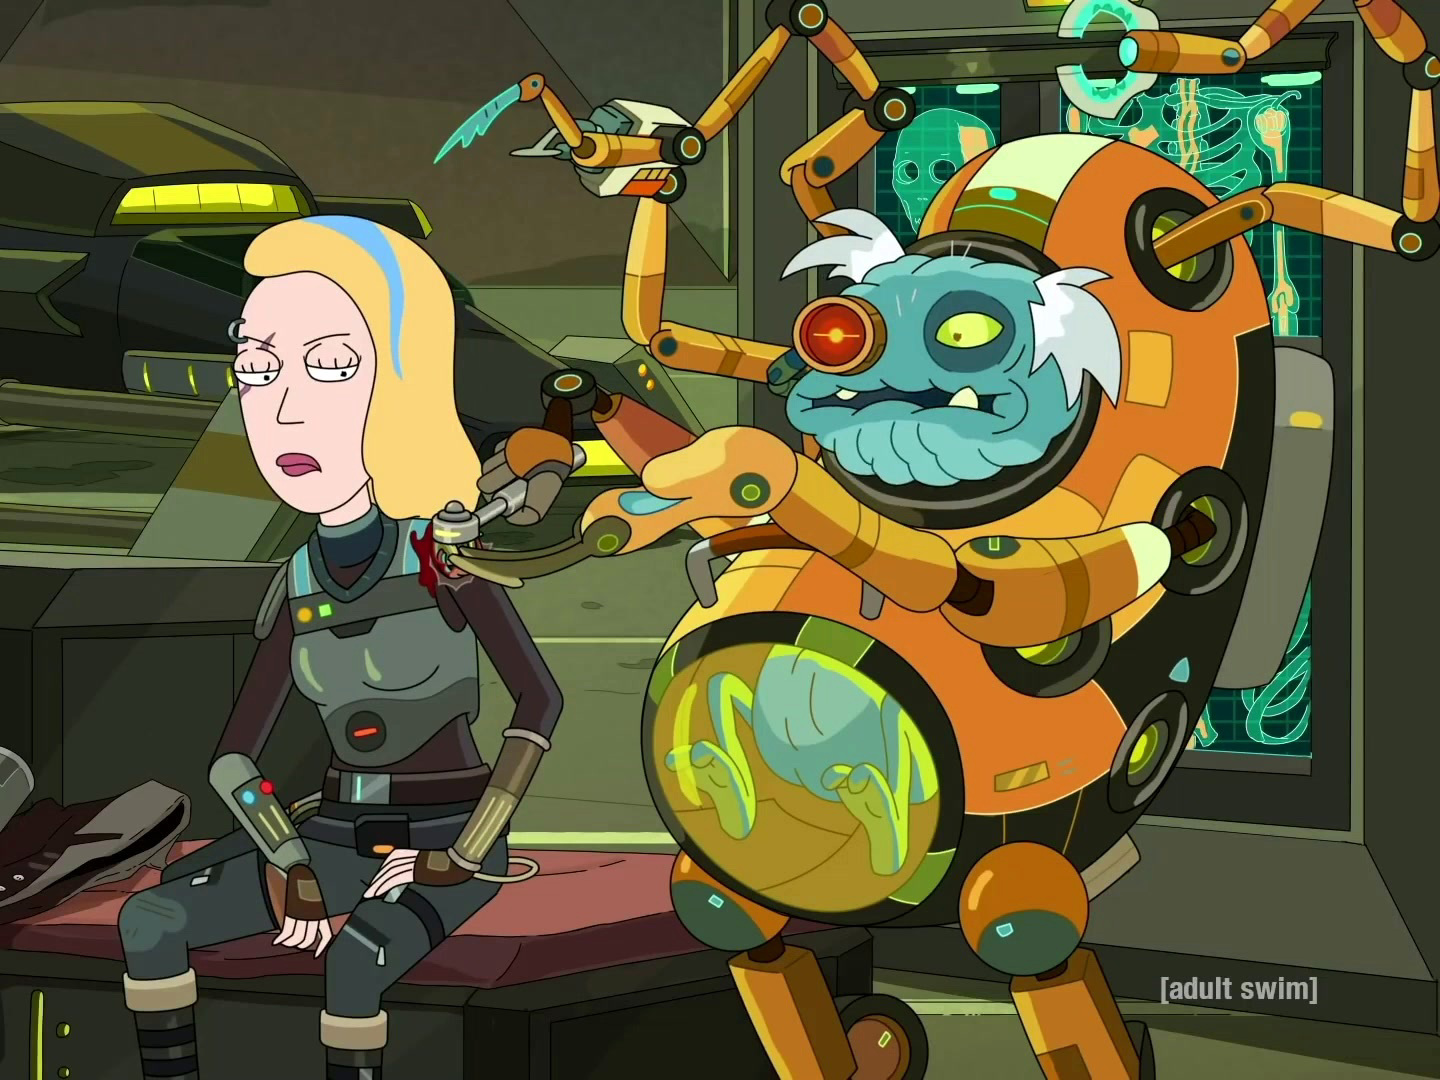 Rick and Morty: Star Mort: Rickturn of the Jerri